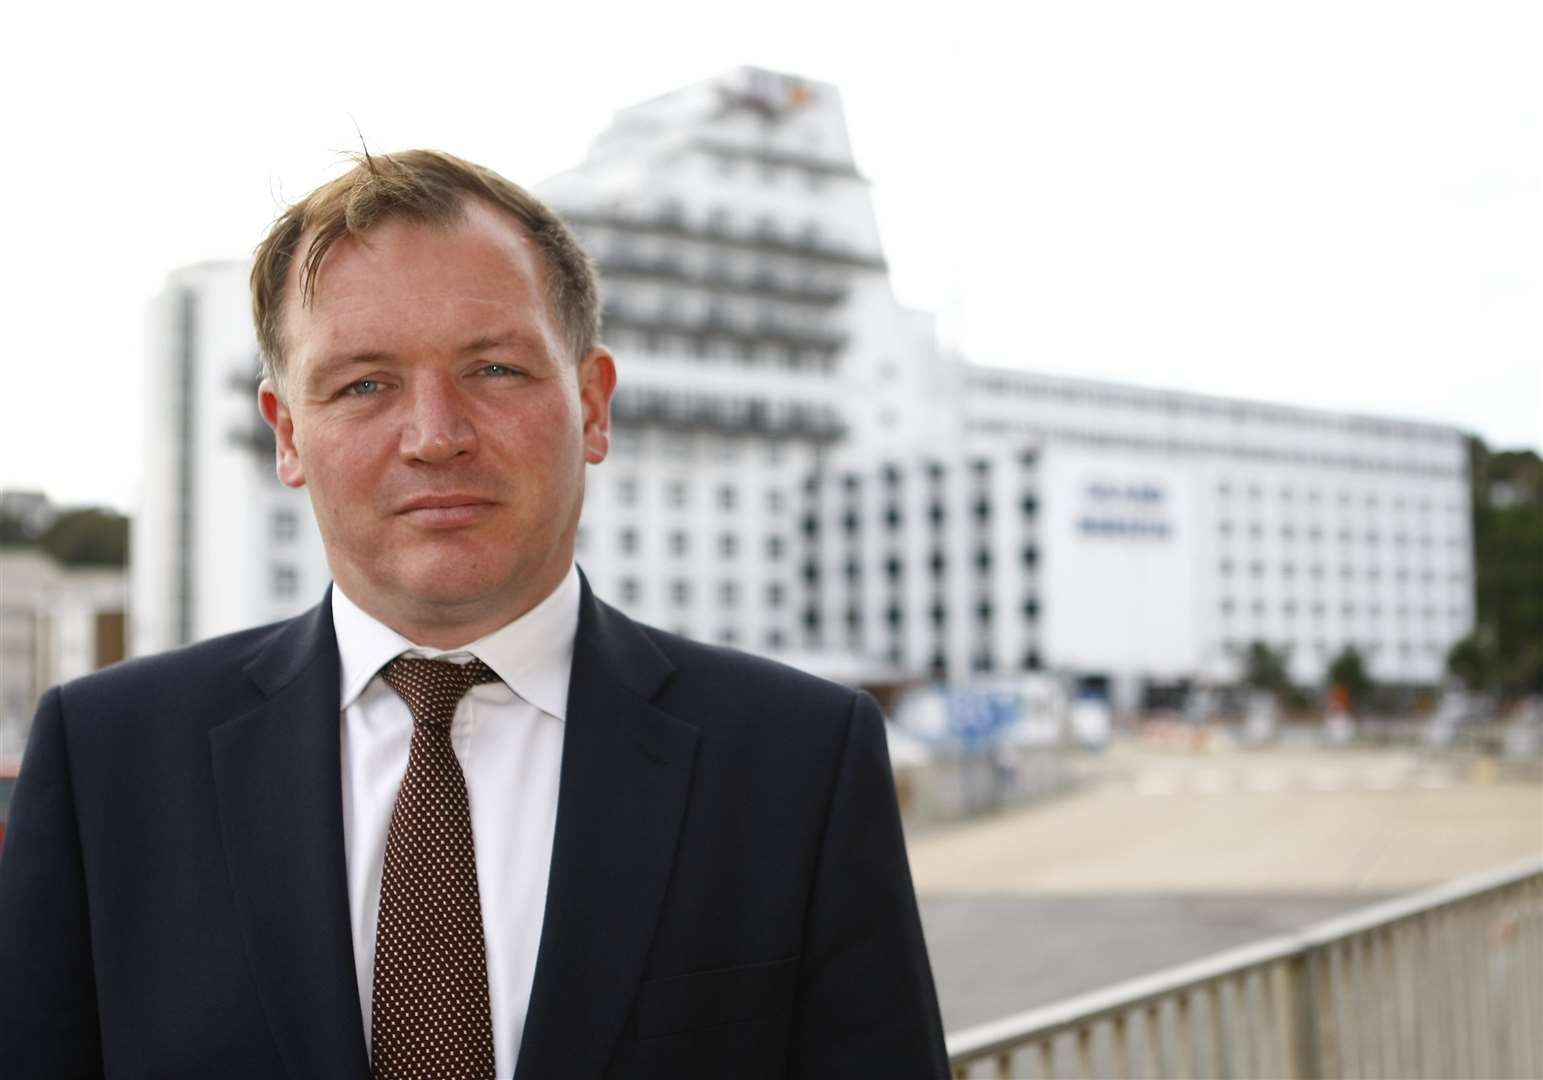 Folkestone and Hythe MP Damian Collins